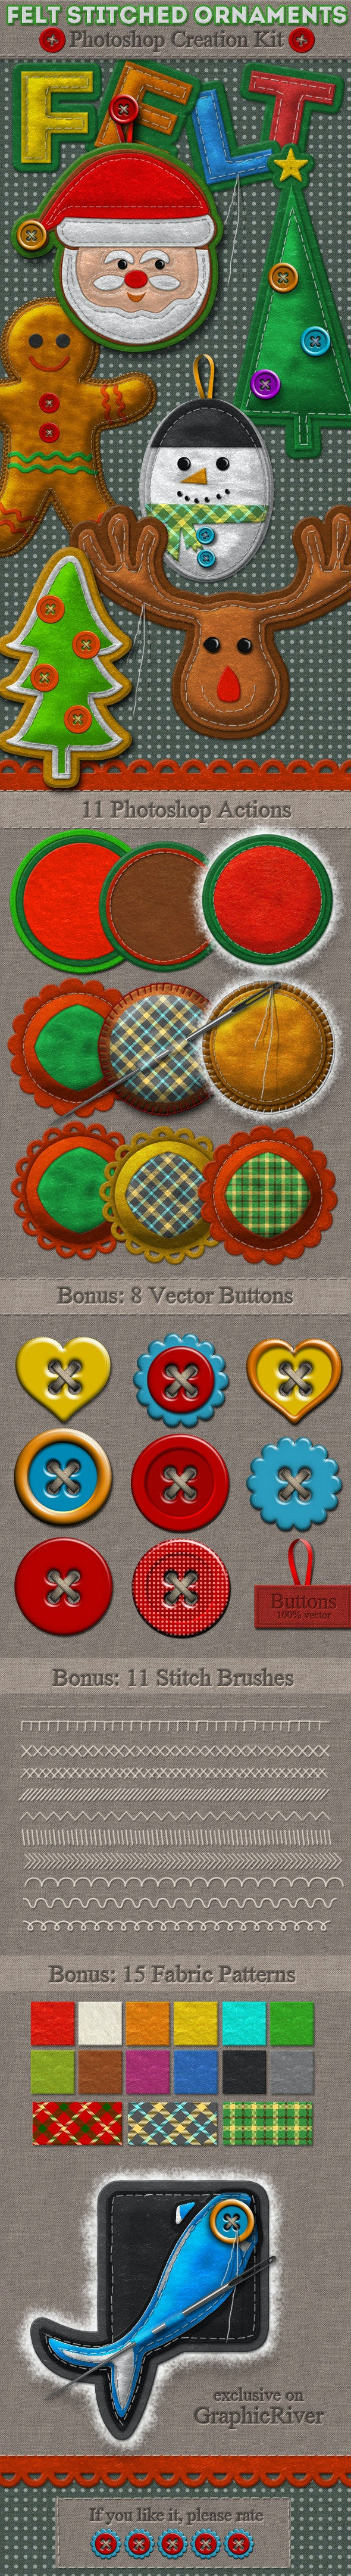 Felt Stitched Ornaments Photoshop Creation Kit - Utilities Actions